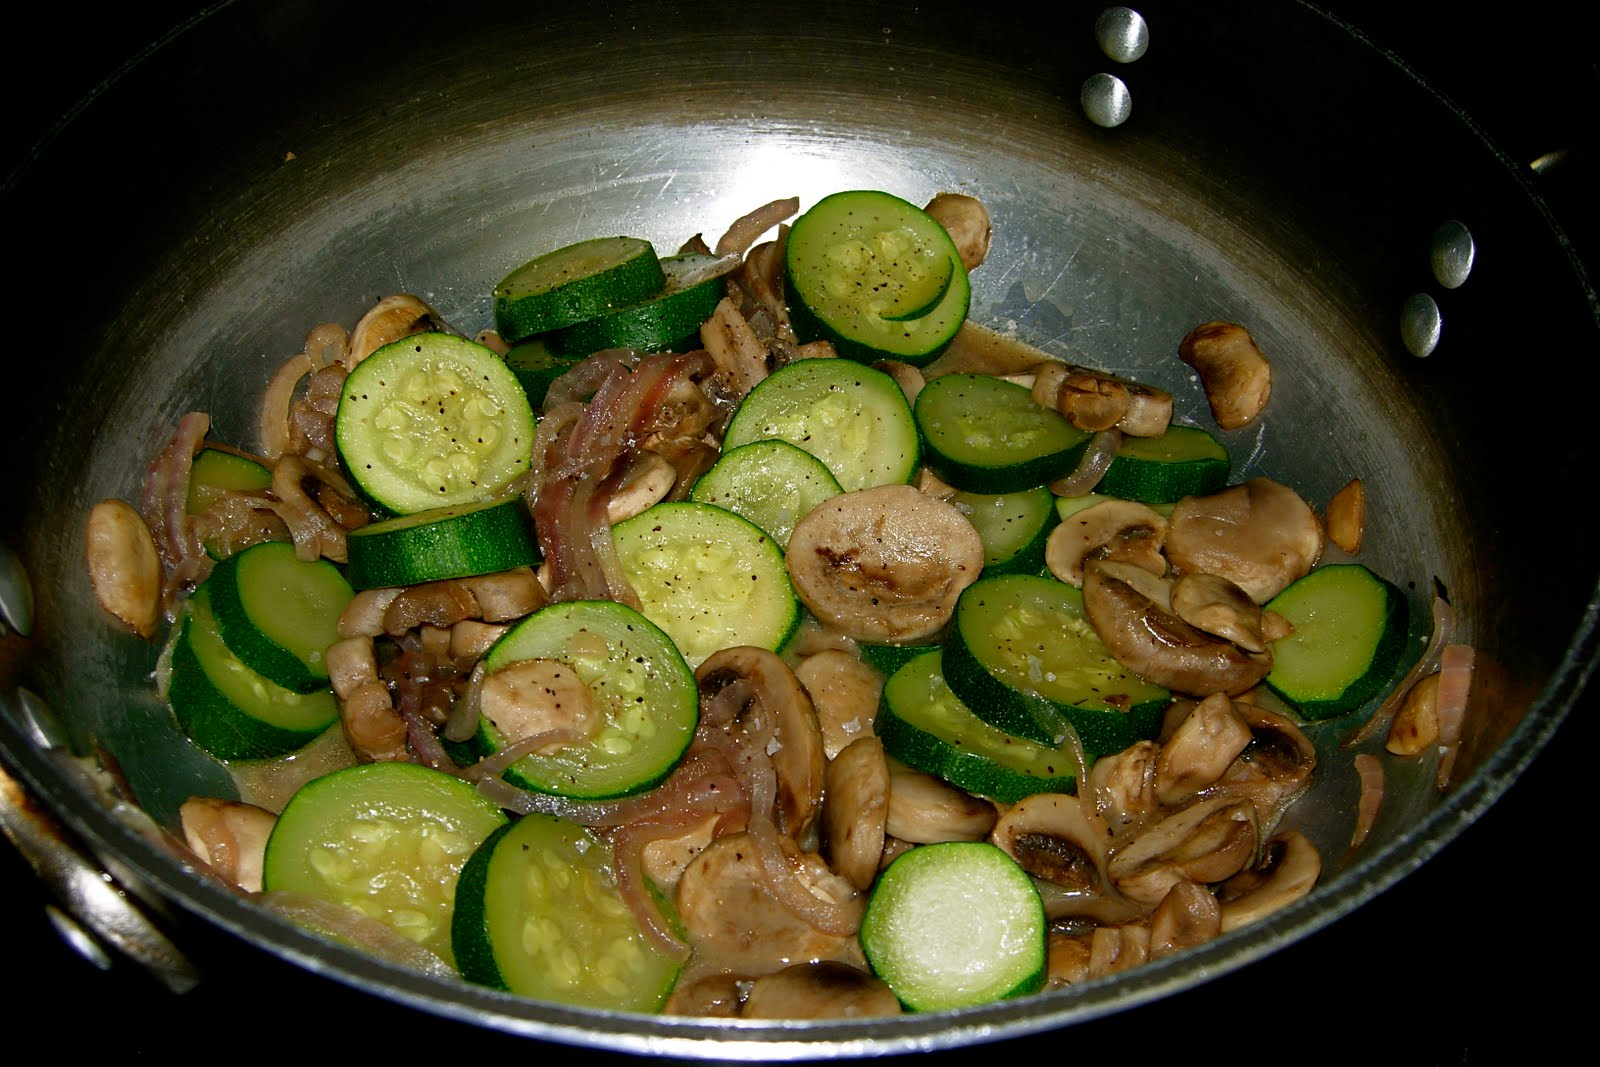 How to cook mushrooms with zucchini 38